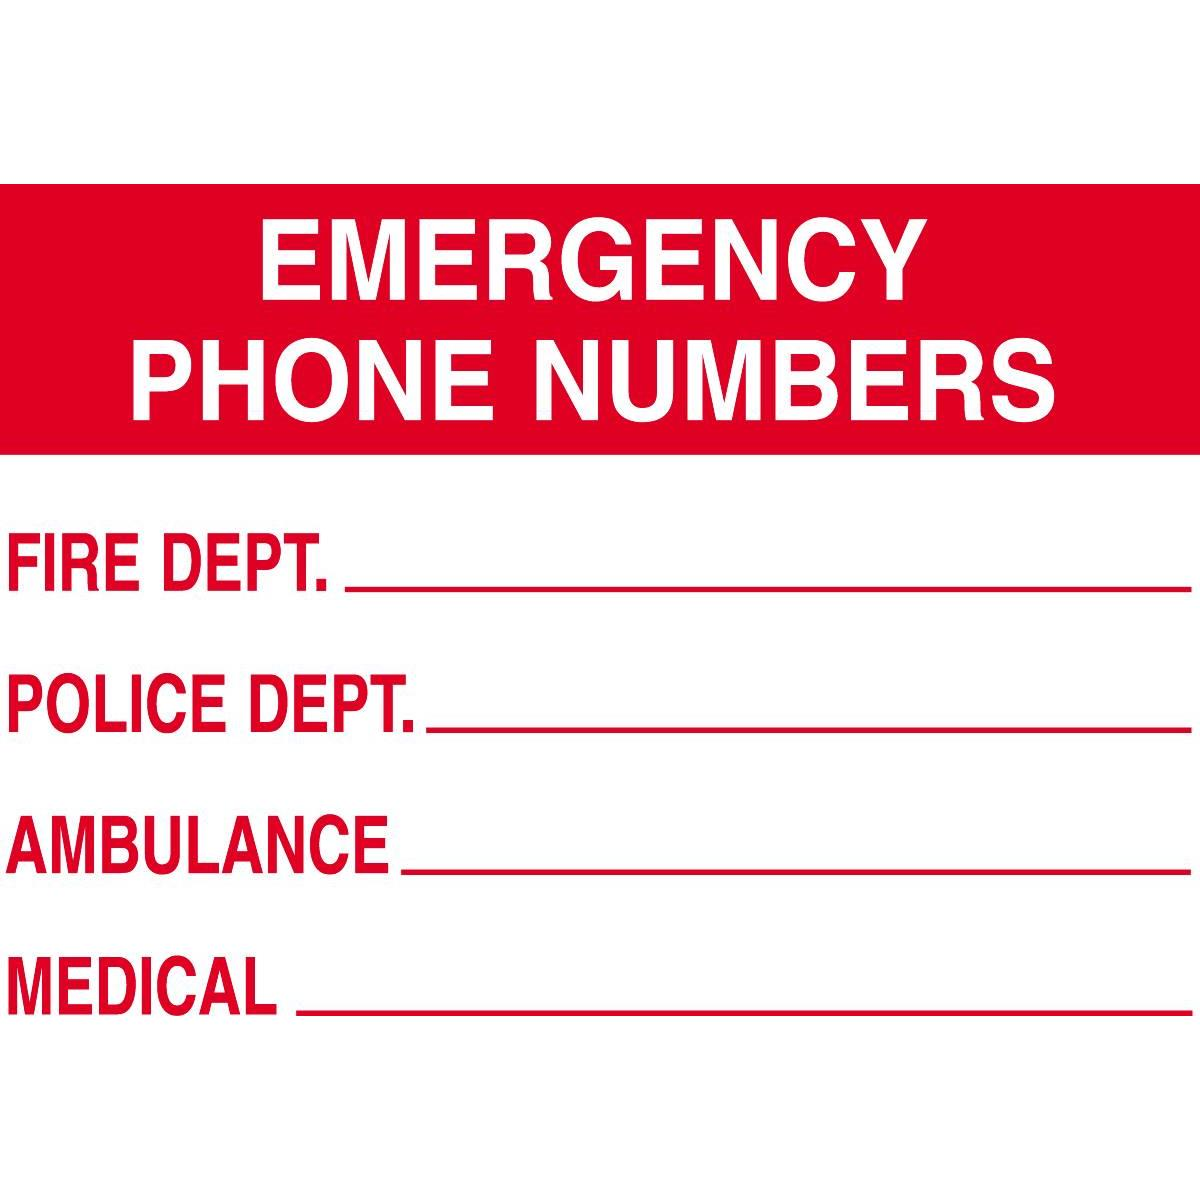 Emergency Phone Numbers Sign   Gempler S